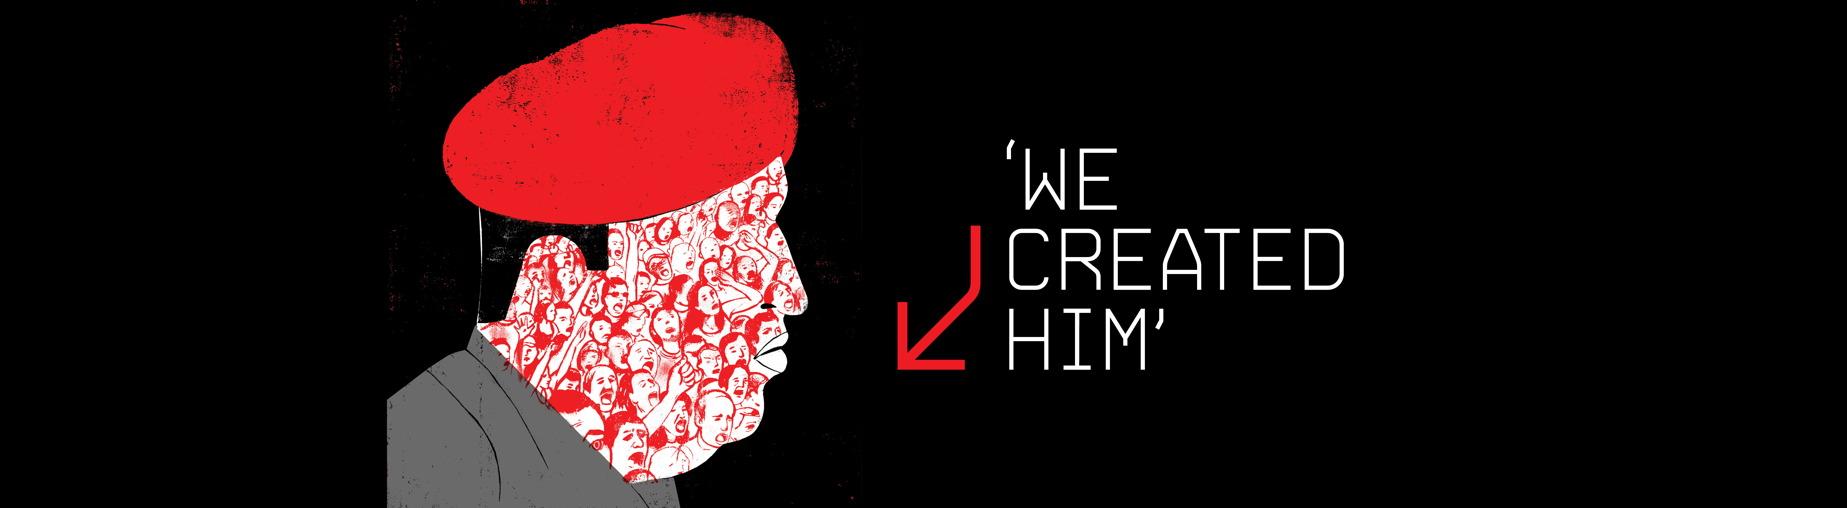 'We Created Him'